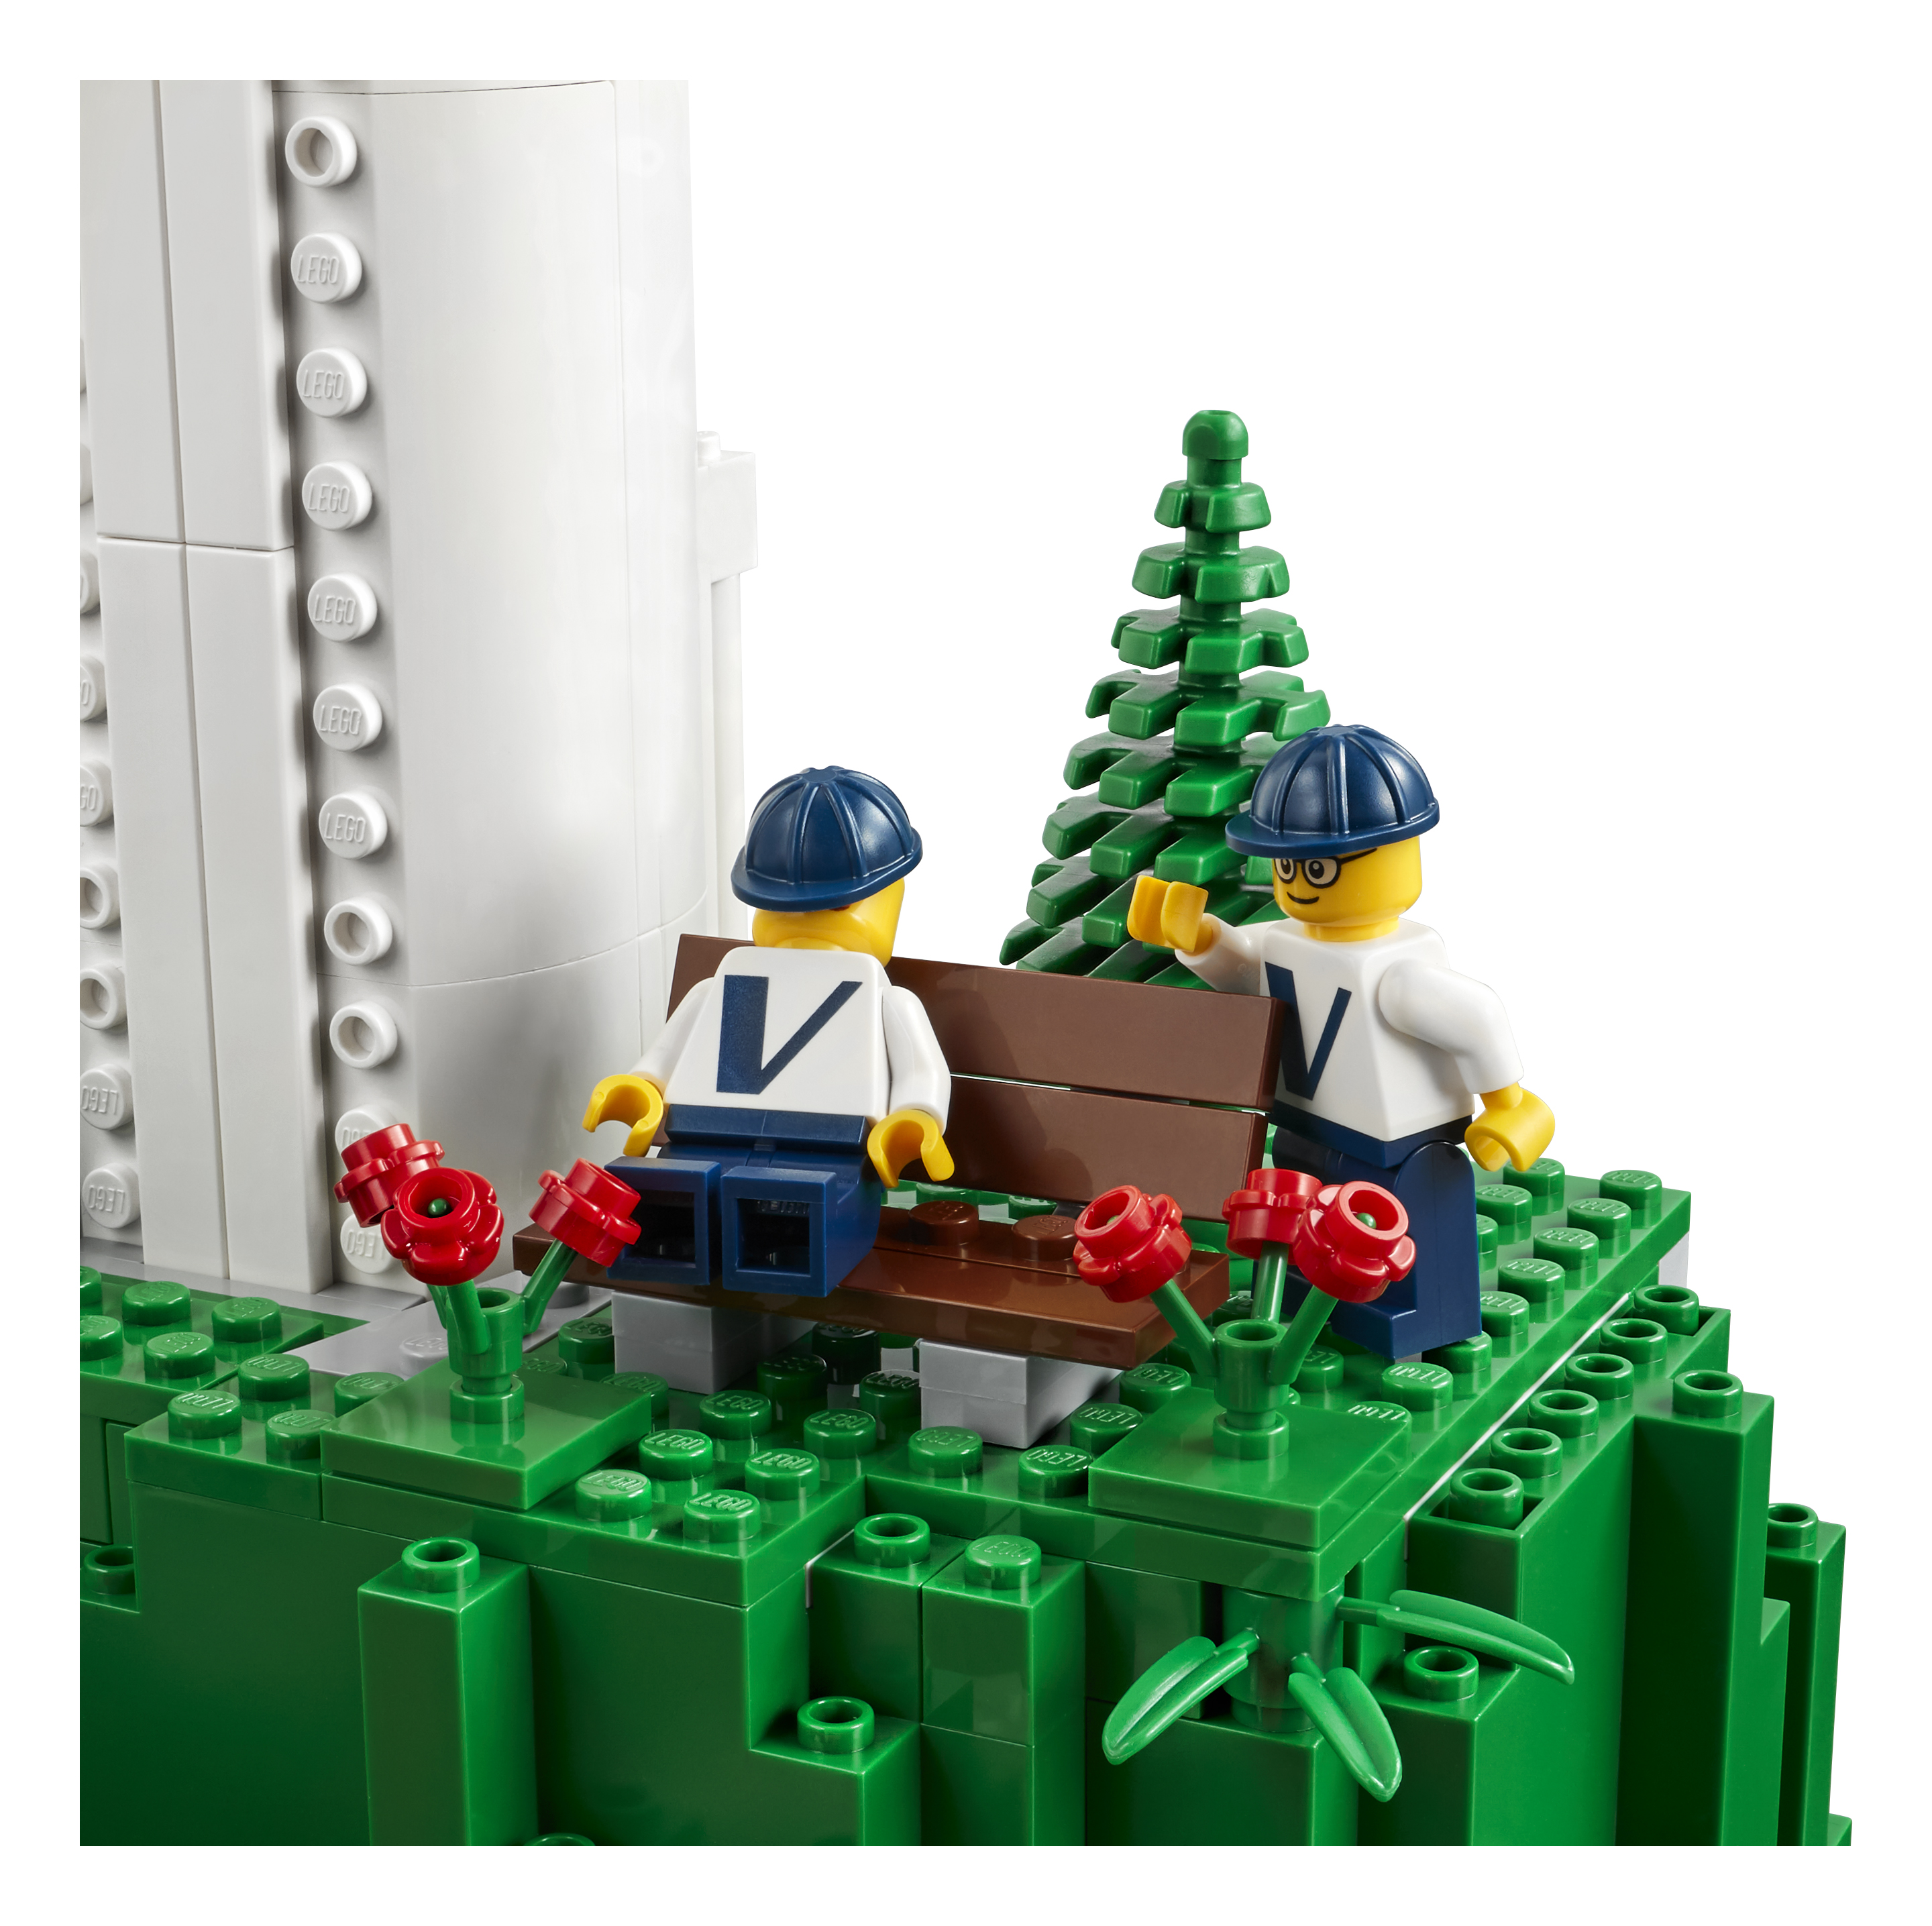 LEGO dials up its sustainability initiatives with the re